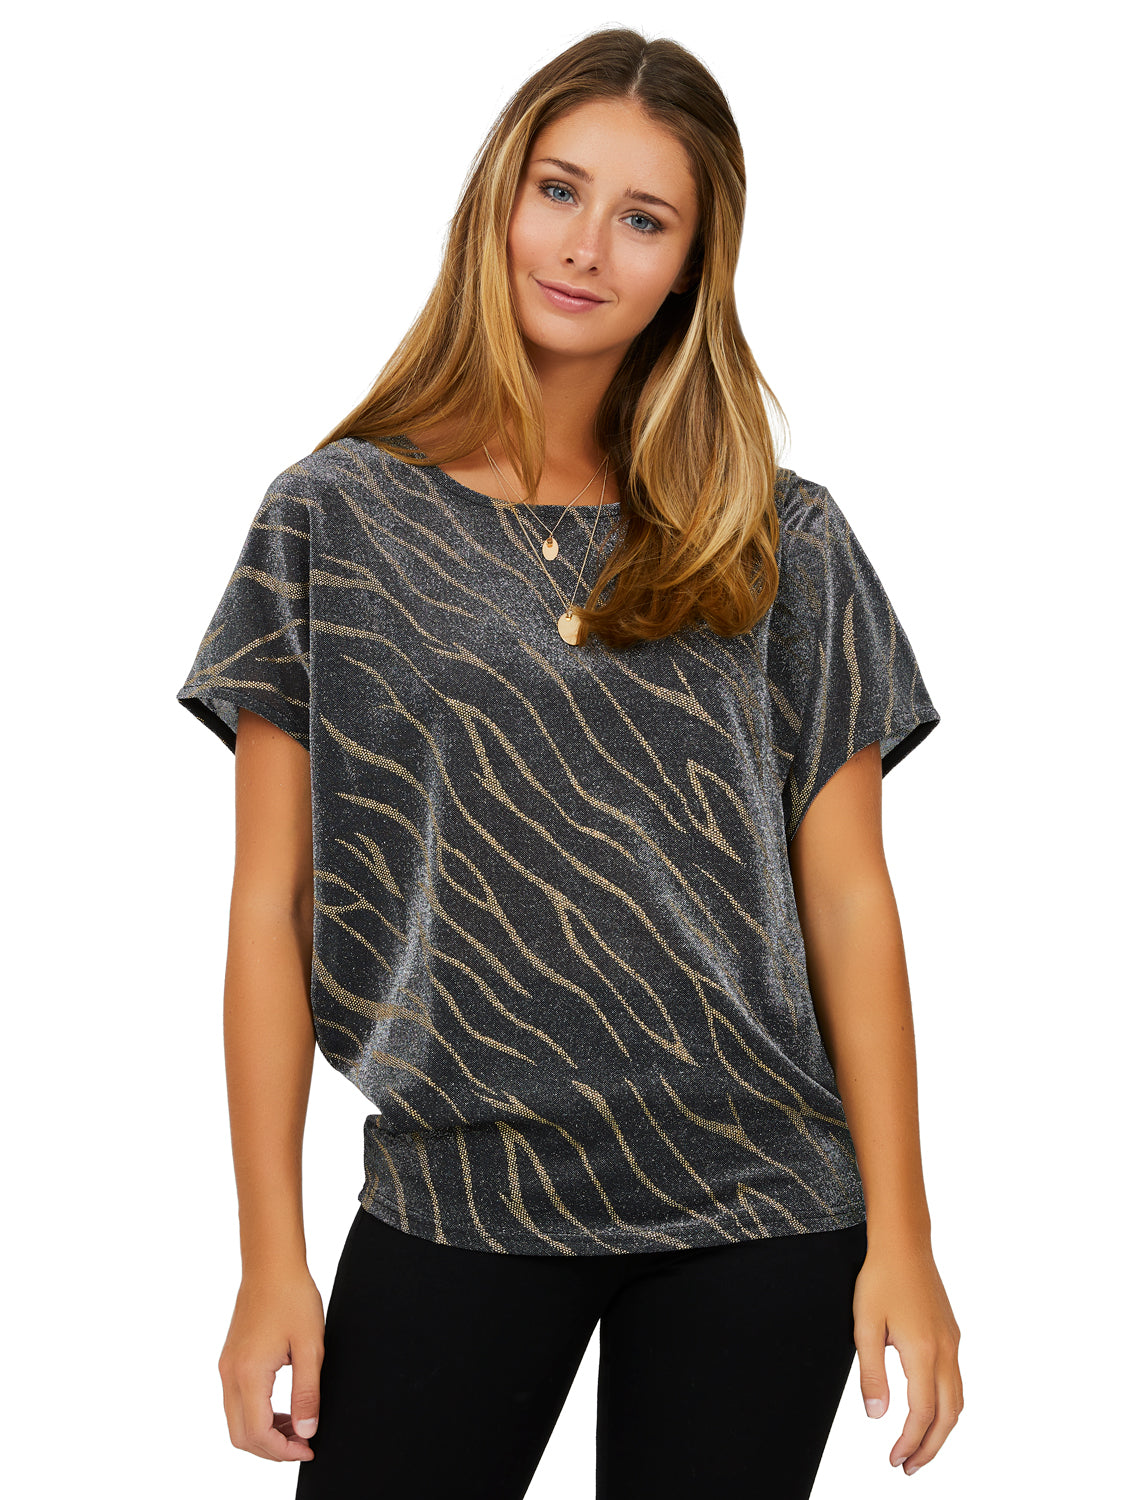 Short Sleeve Glitter Burnout Print Top